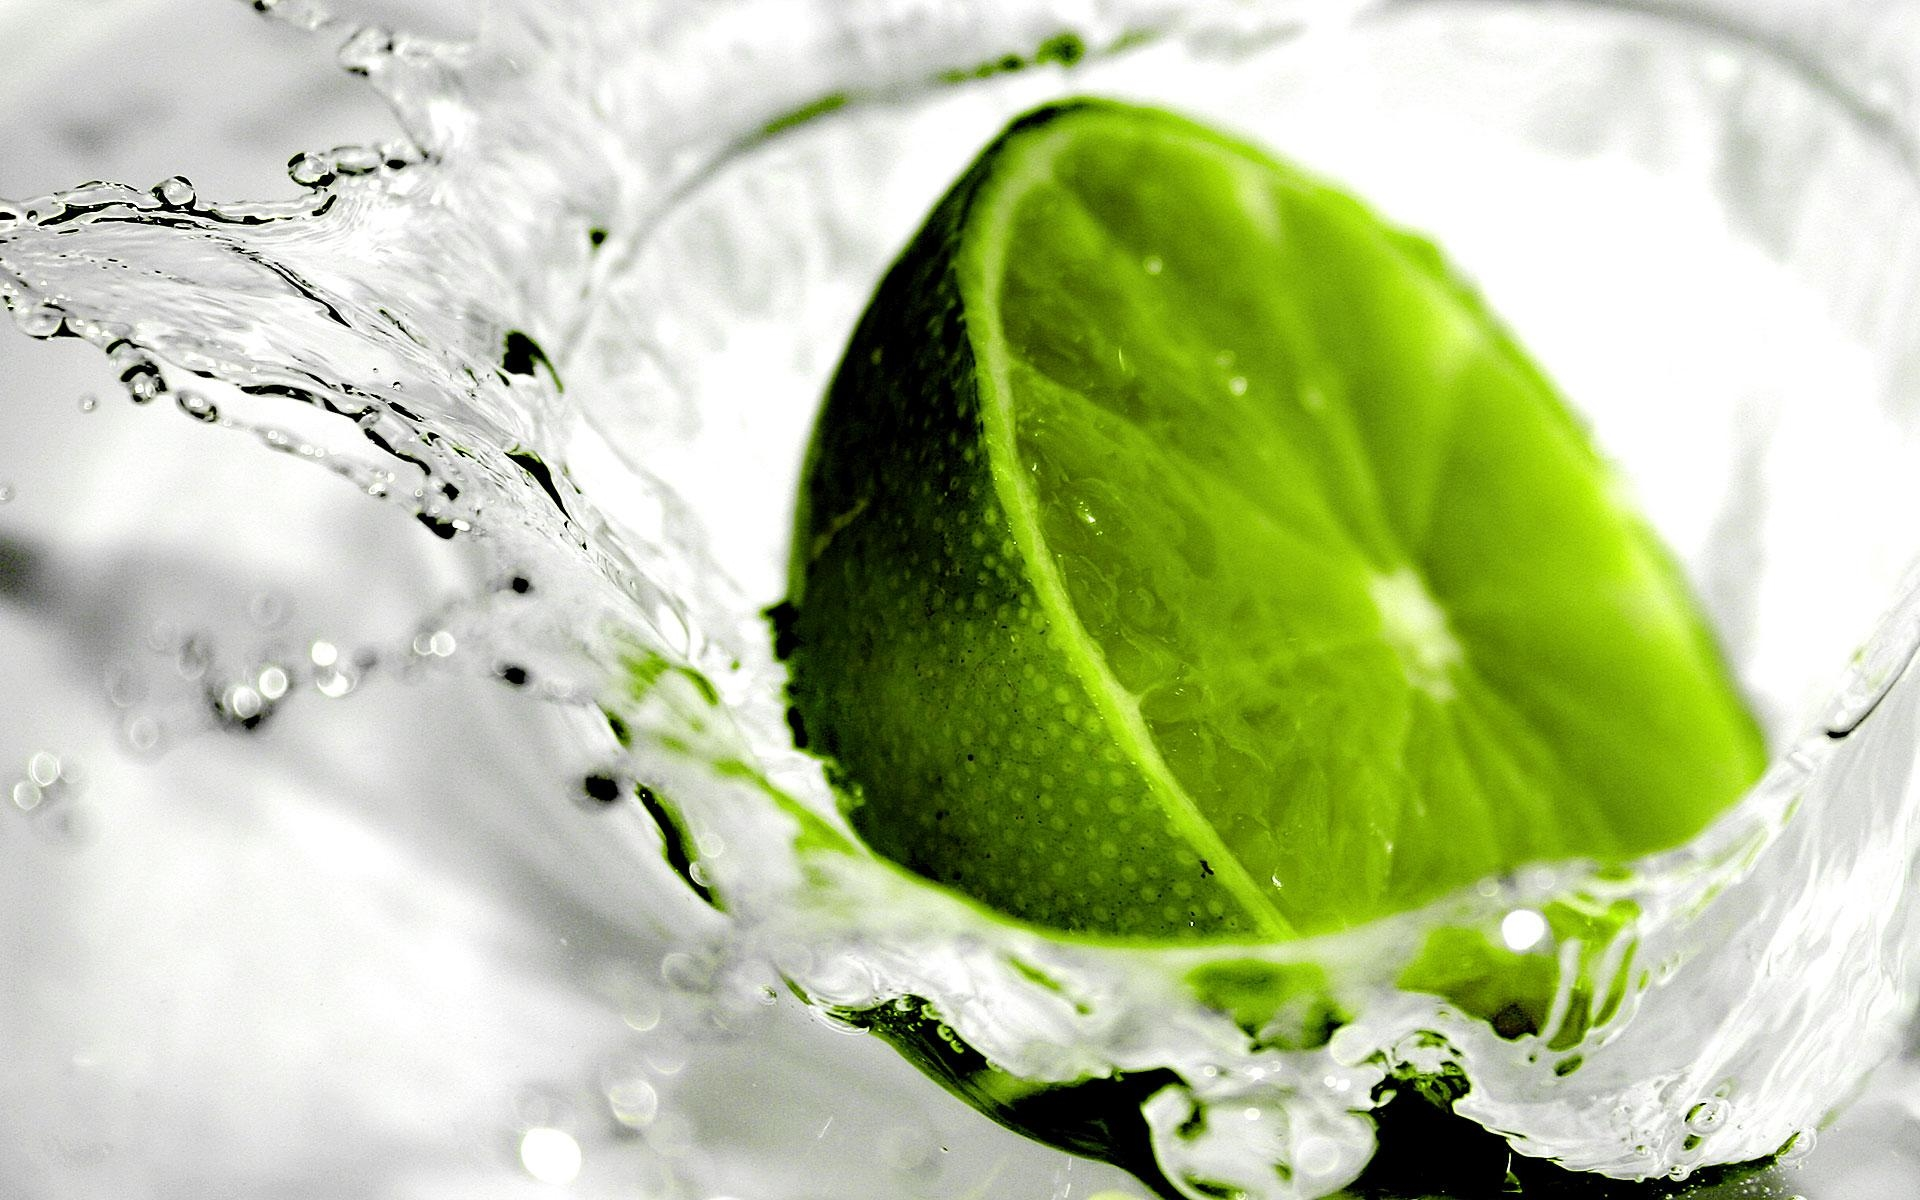 Fruits 3d wallpapers - Green Lemon Water Splash Hd Wallpaper